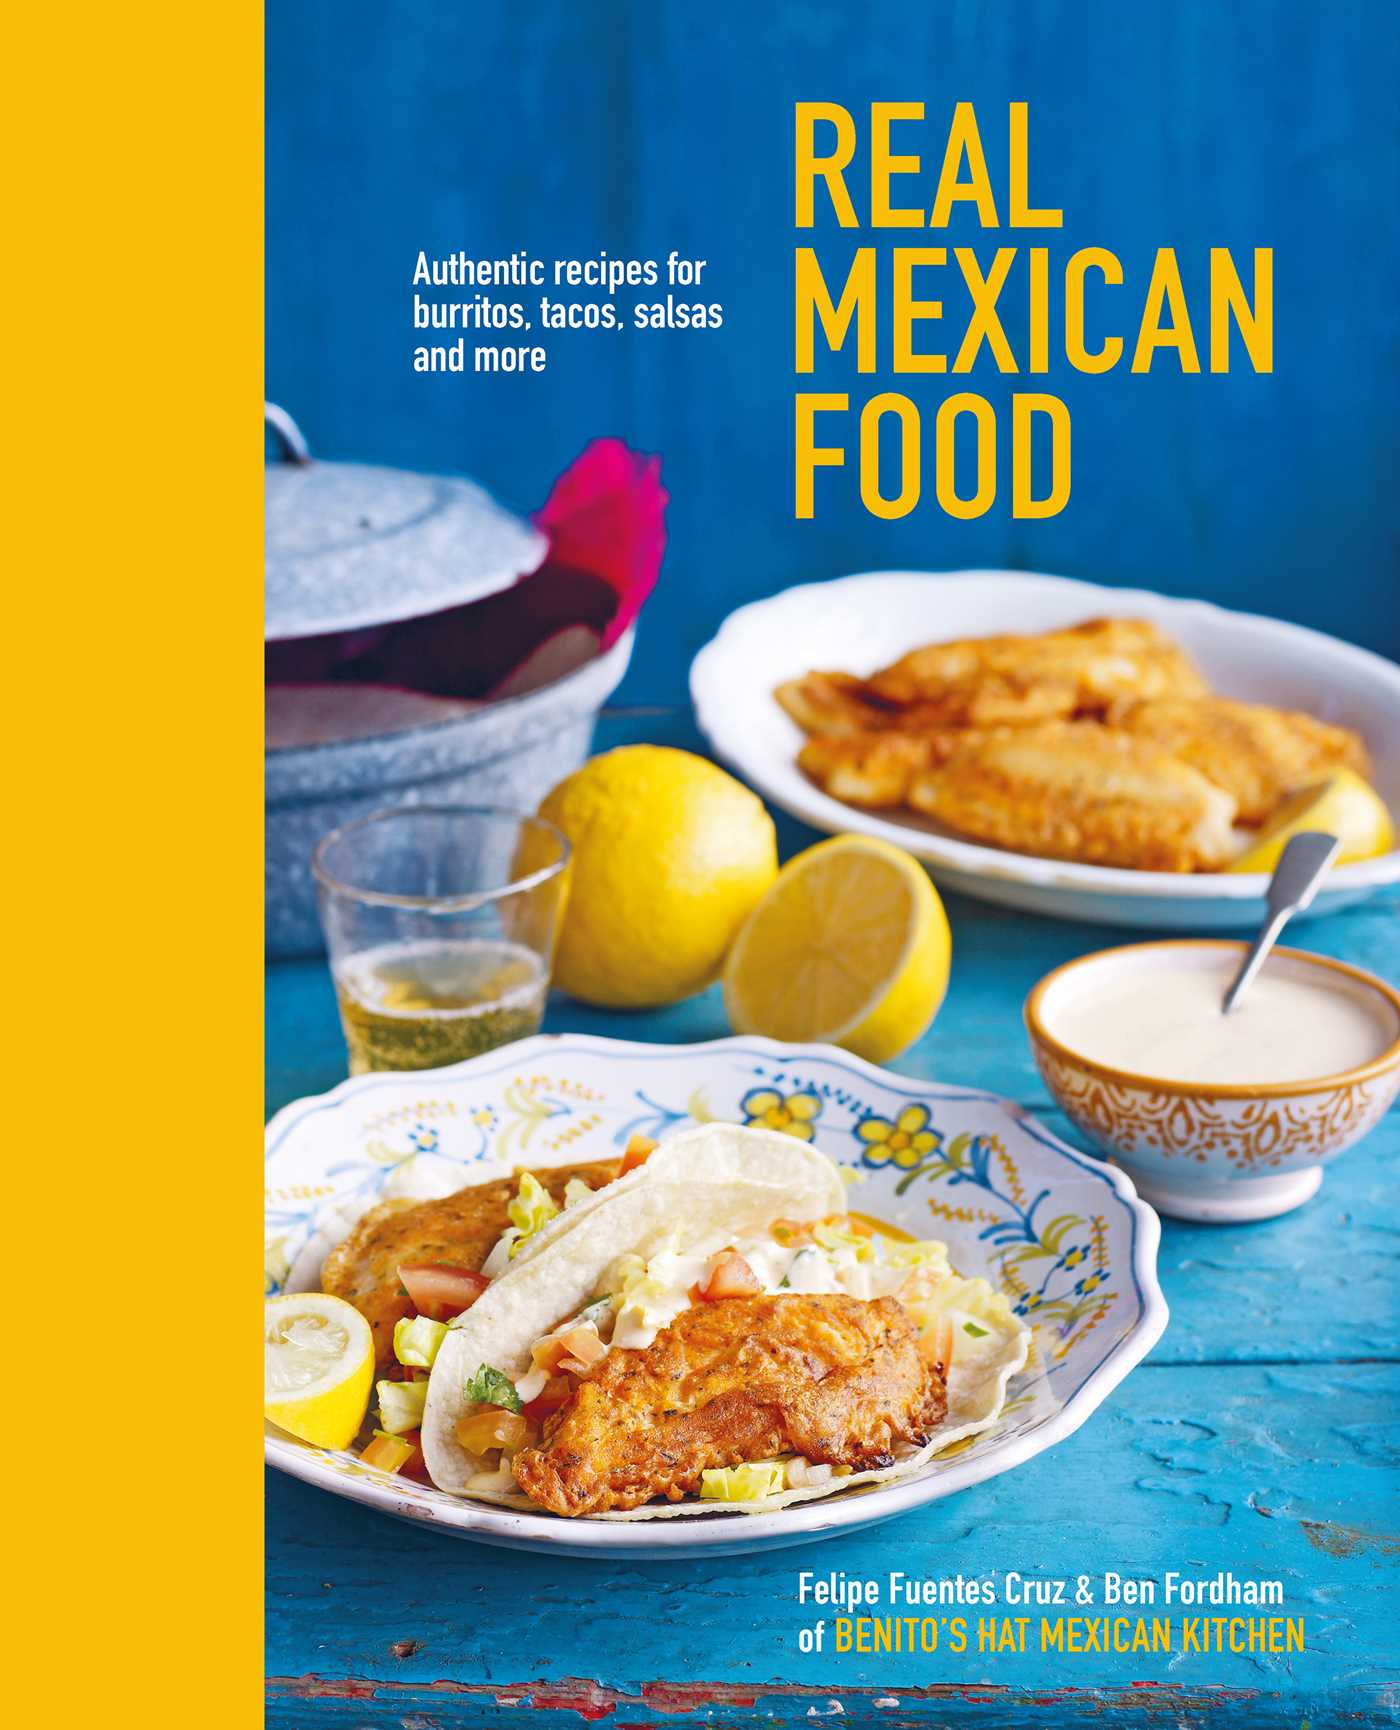 Real mexican food book by ben fordham felipe fuentes cruz book cover image jpg real mexican food forumfinder Choice Image